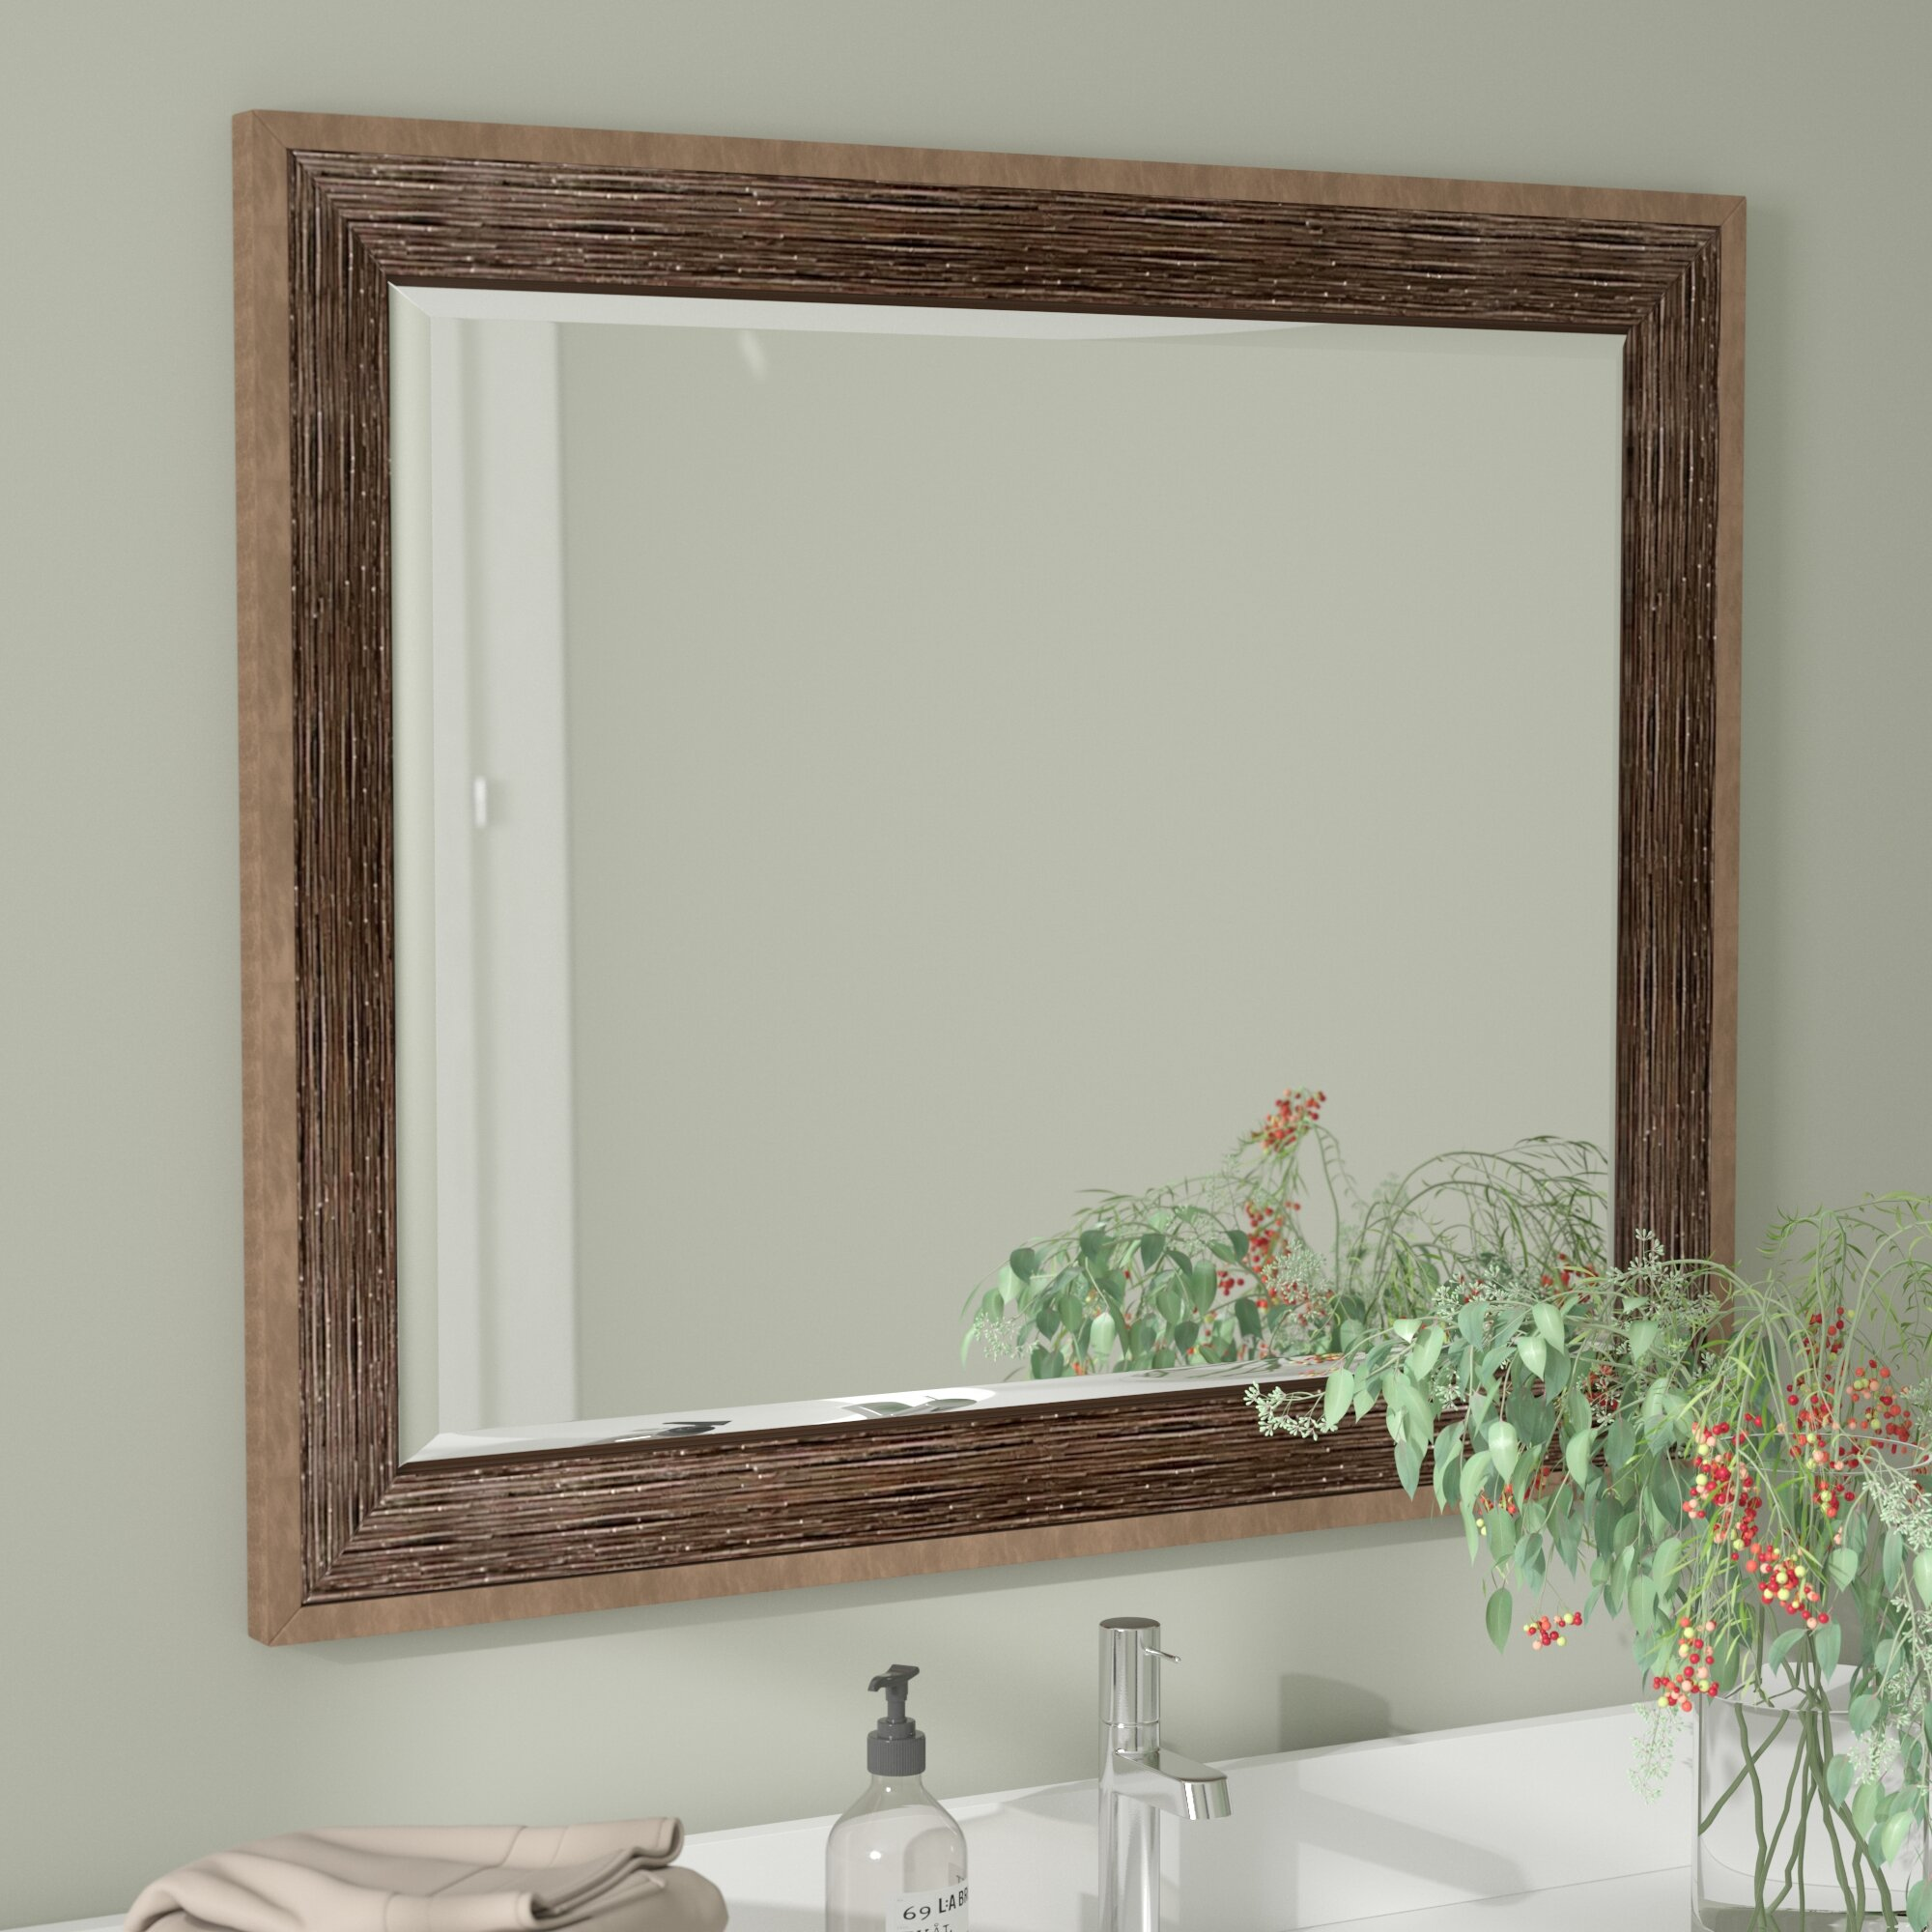 Union Rustic Drift Wall Mirror & Reviews